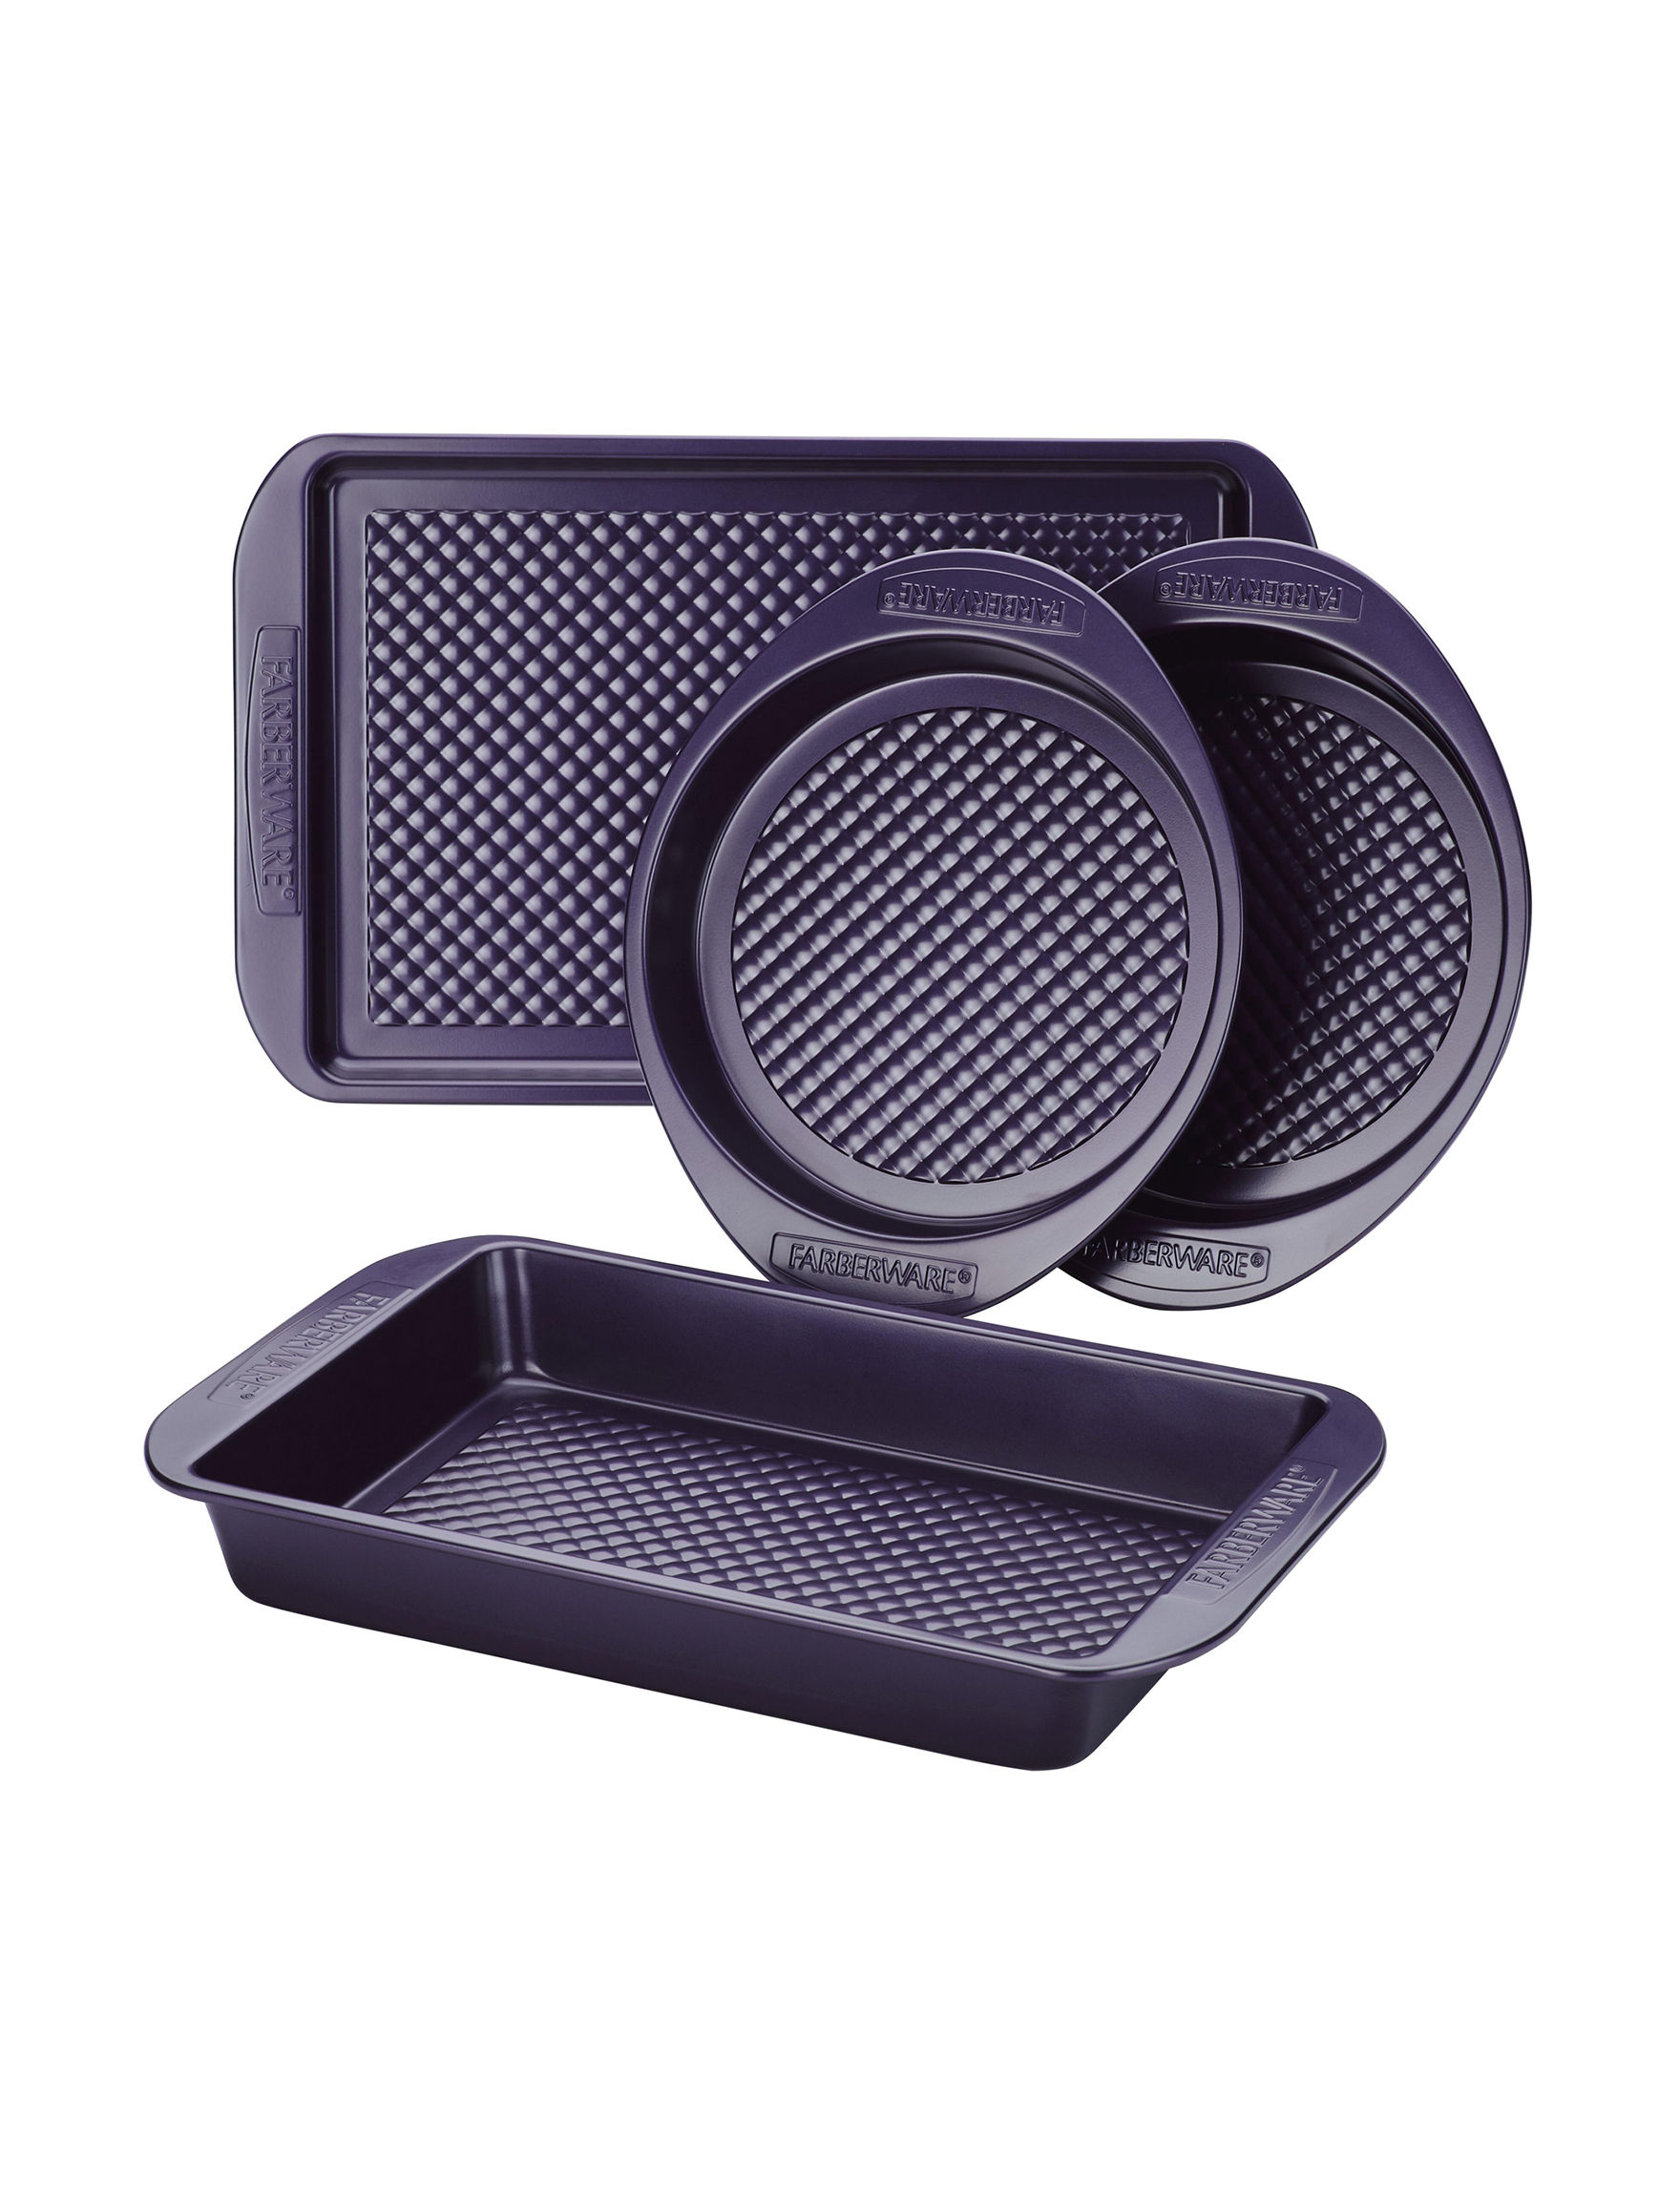 Farberware Purple Bakeware Sets Baking & Casserole Dishes Cake Pans Cookie Sheets Bakeware